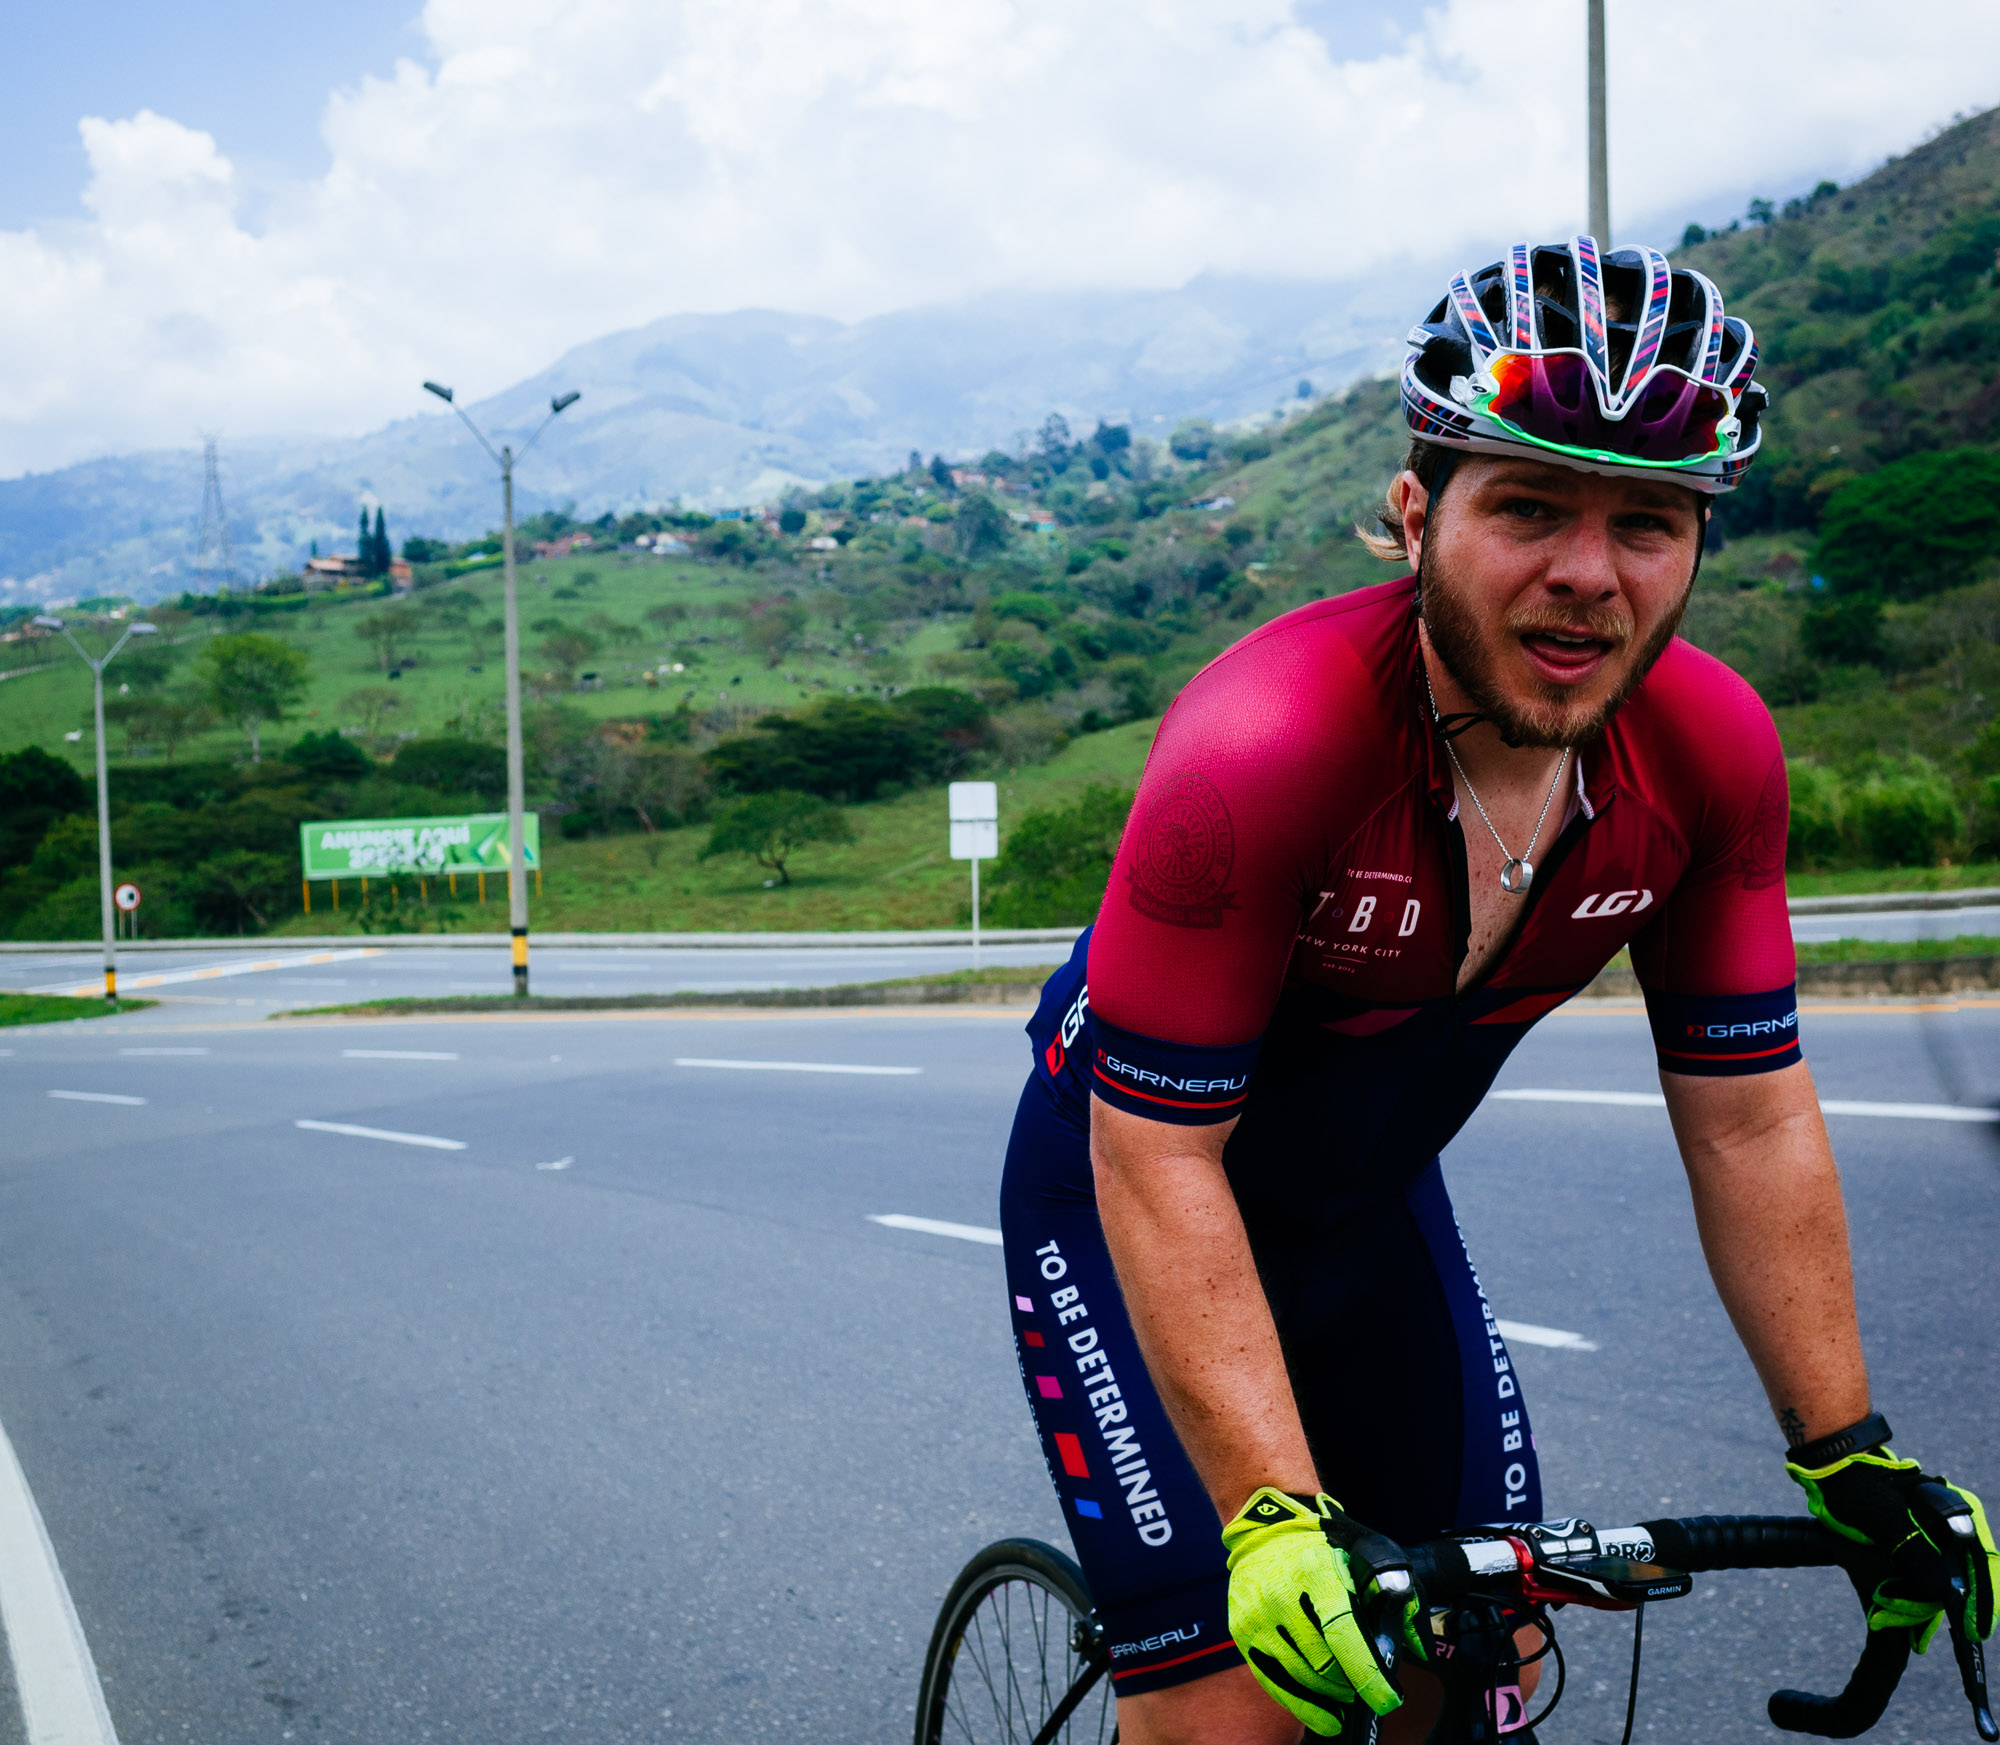 to-be-determined-photo-rhetoric-cycling-in-colombia-1007.jpg